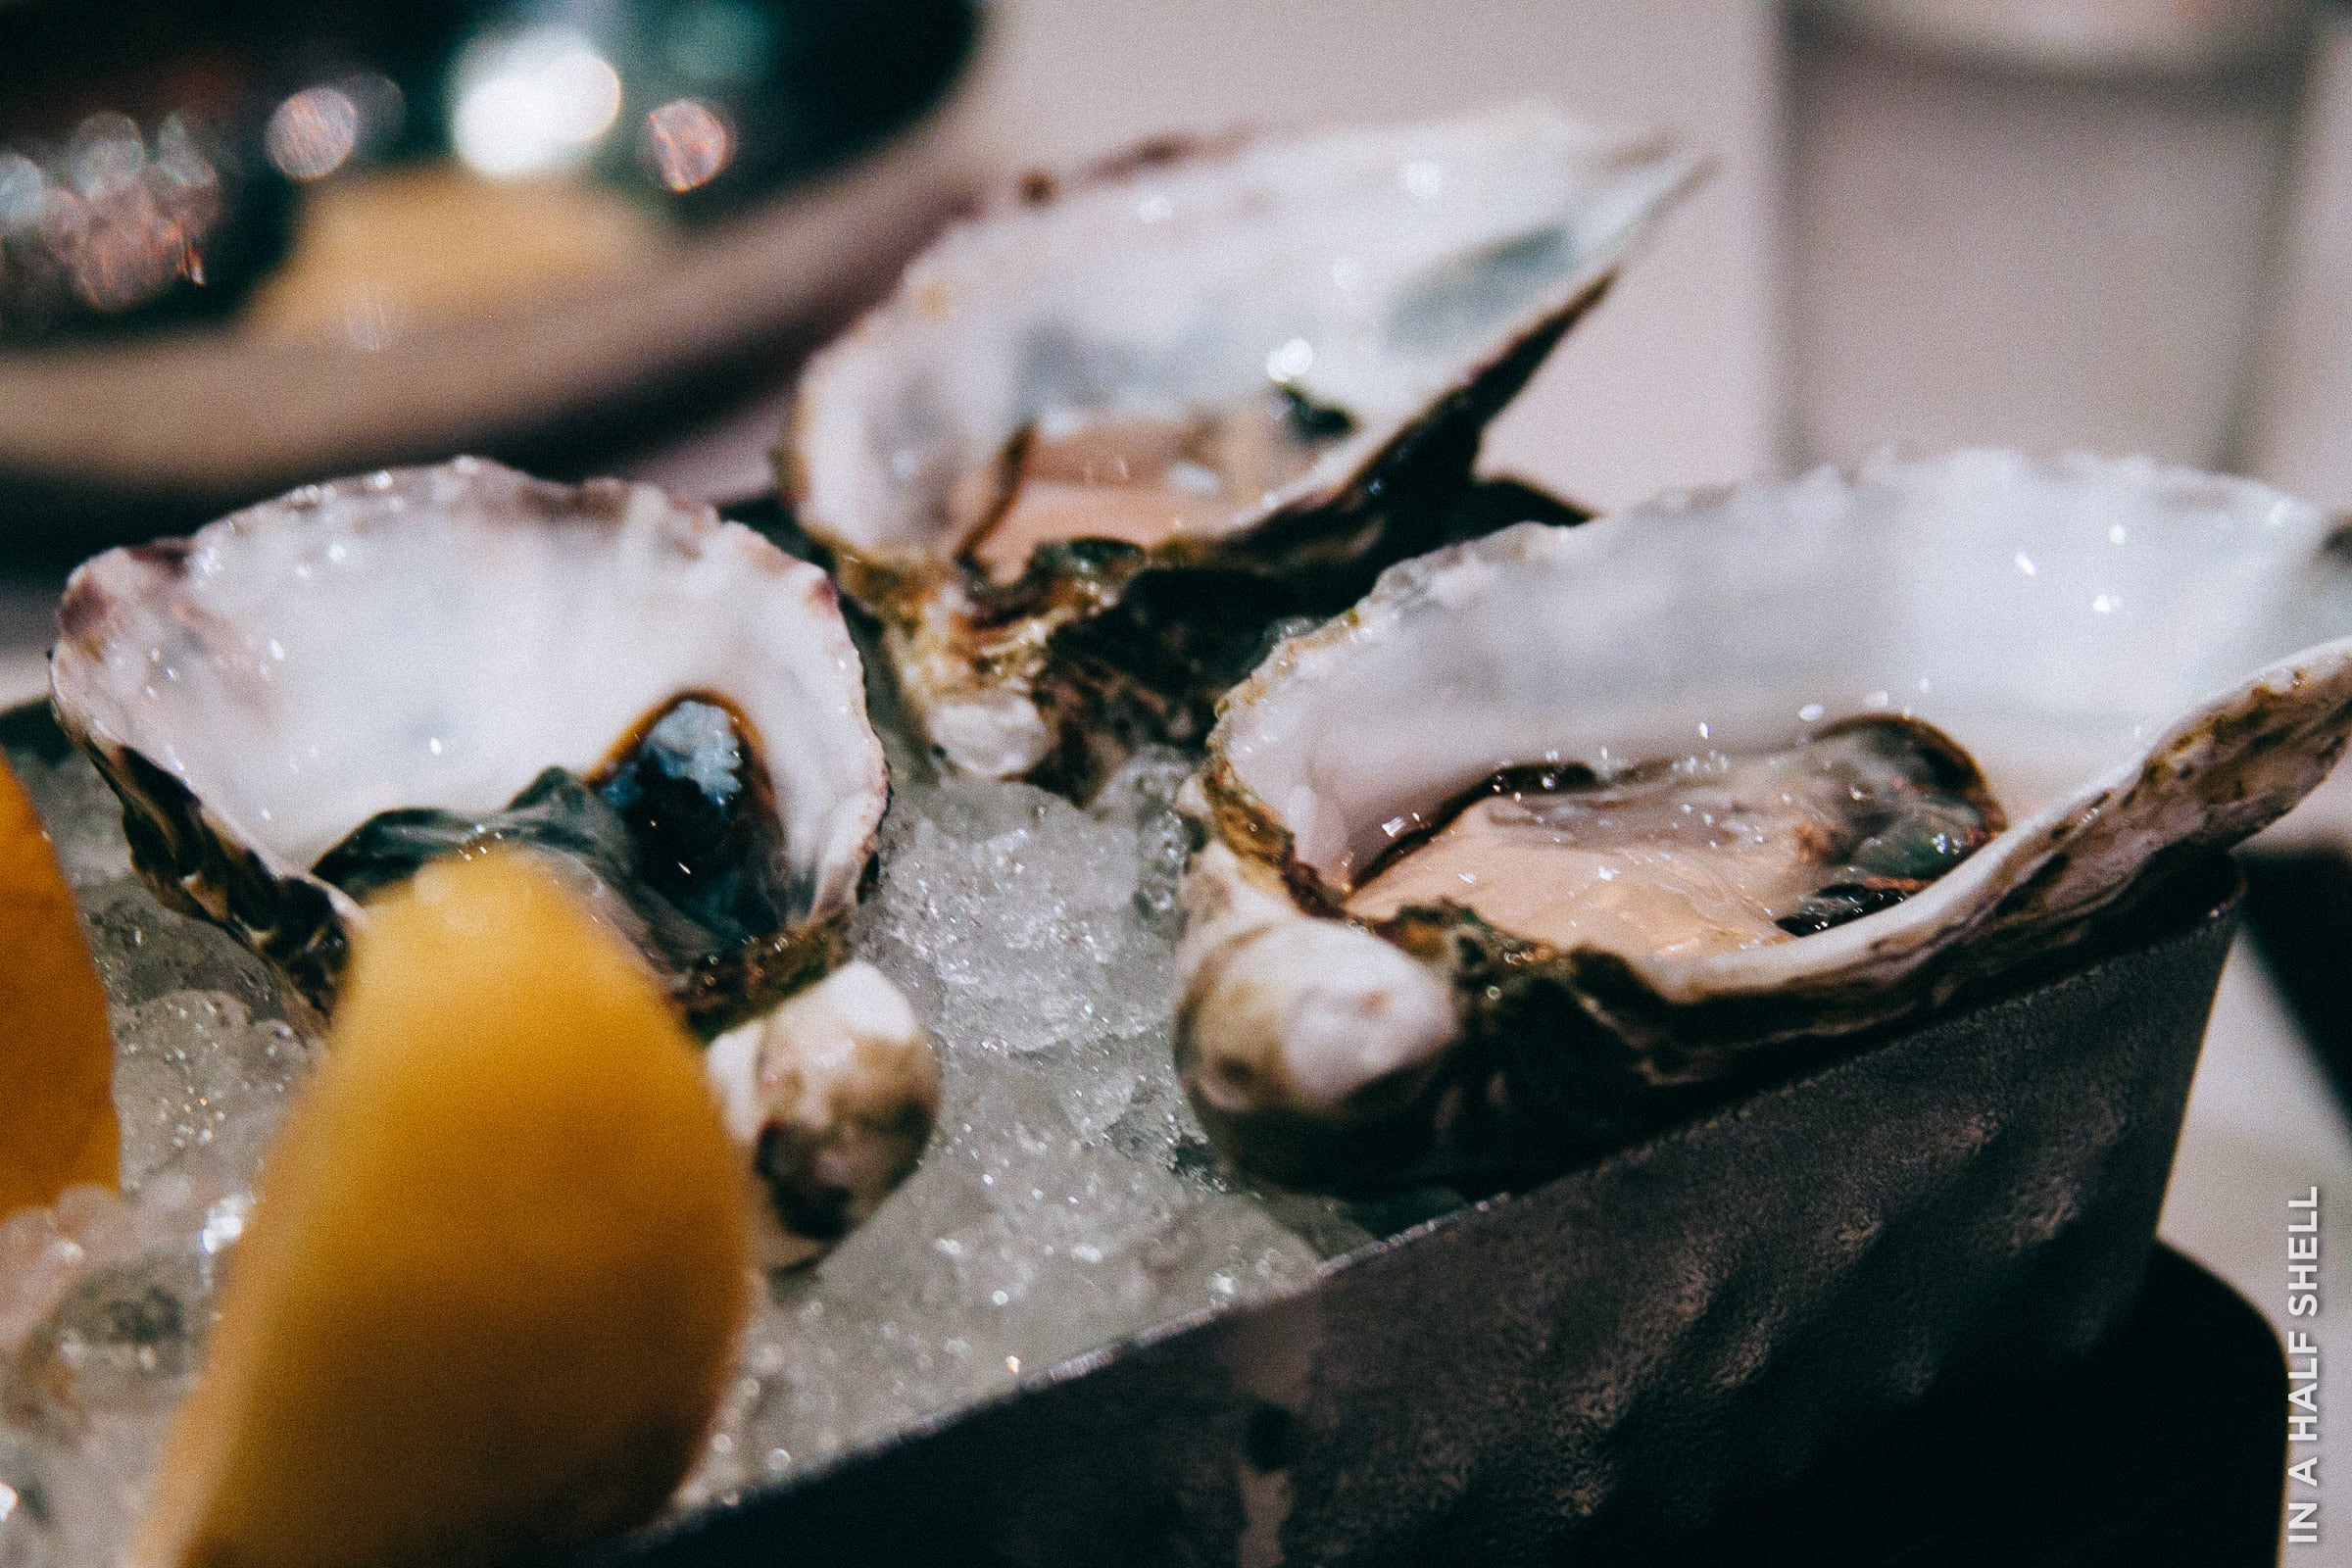 Sydney Rock oysters from Australia savored in Jakarta, Indonesia